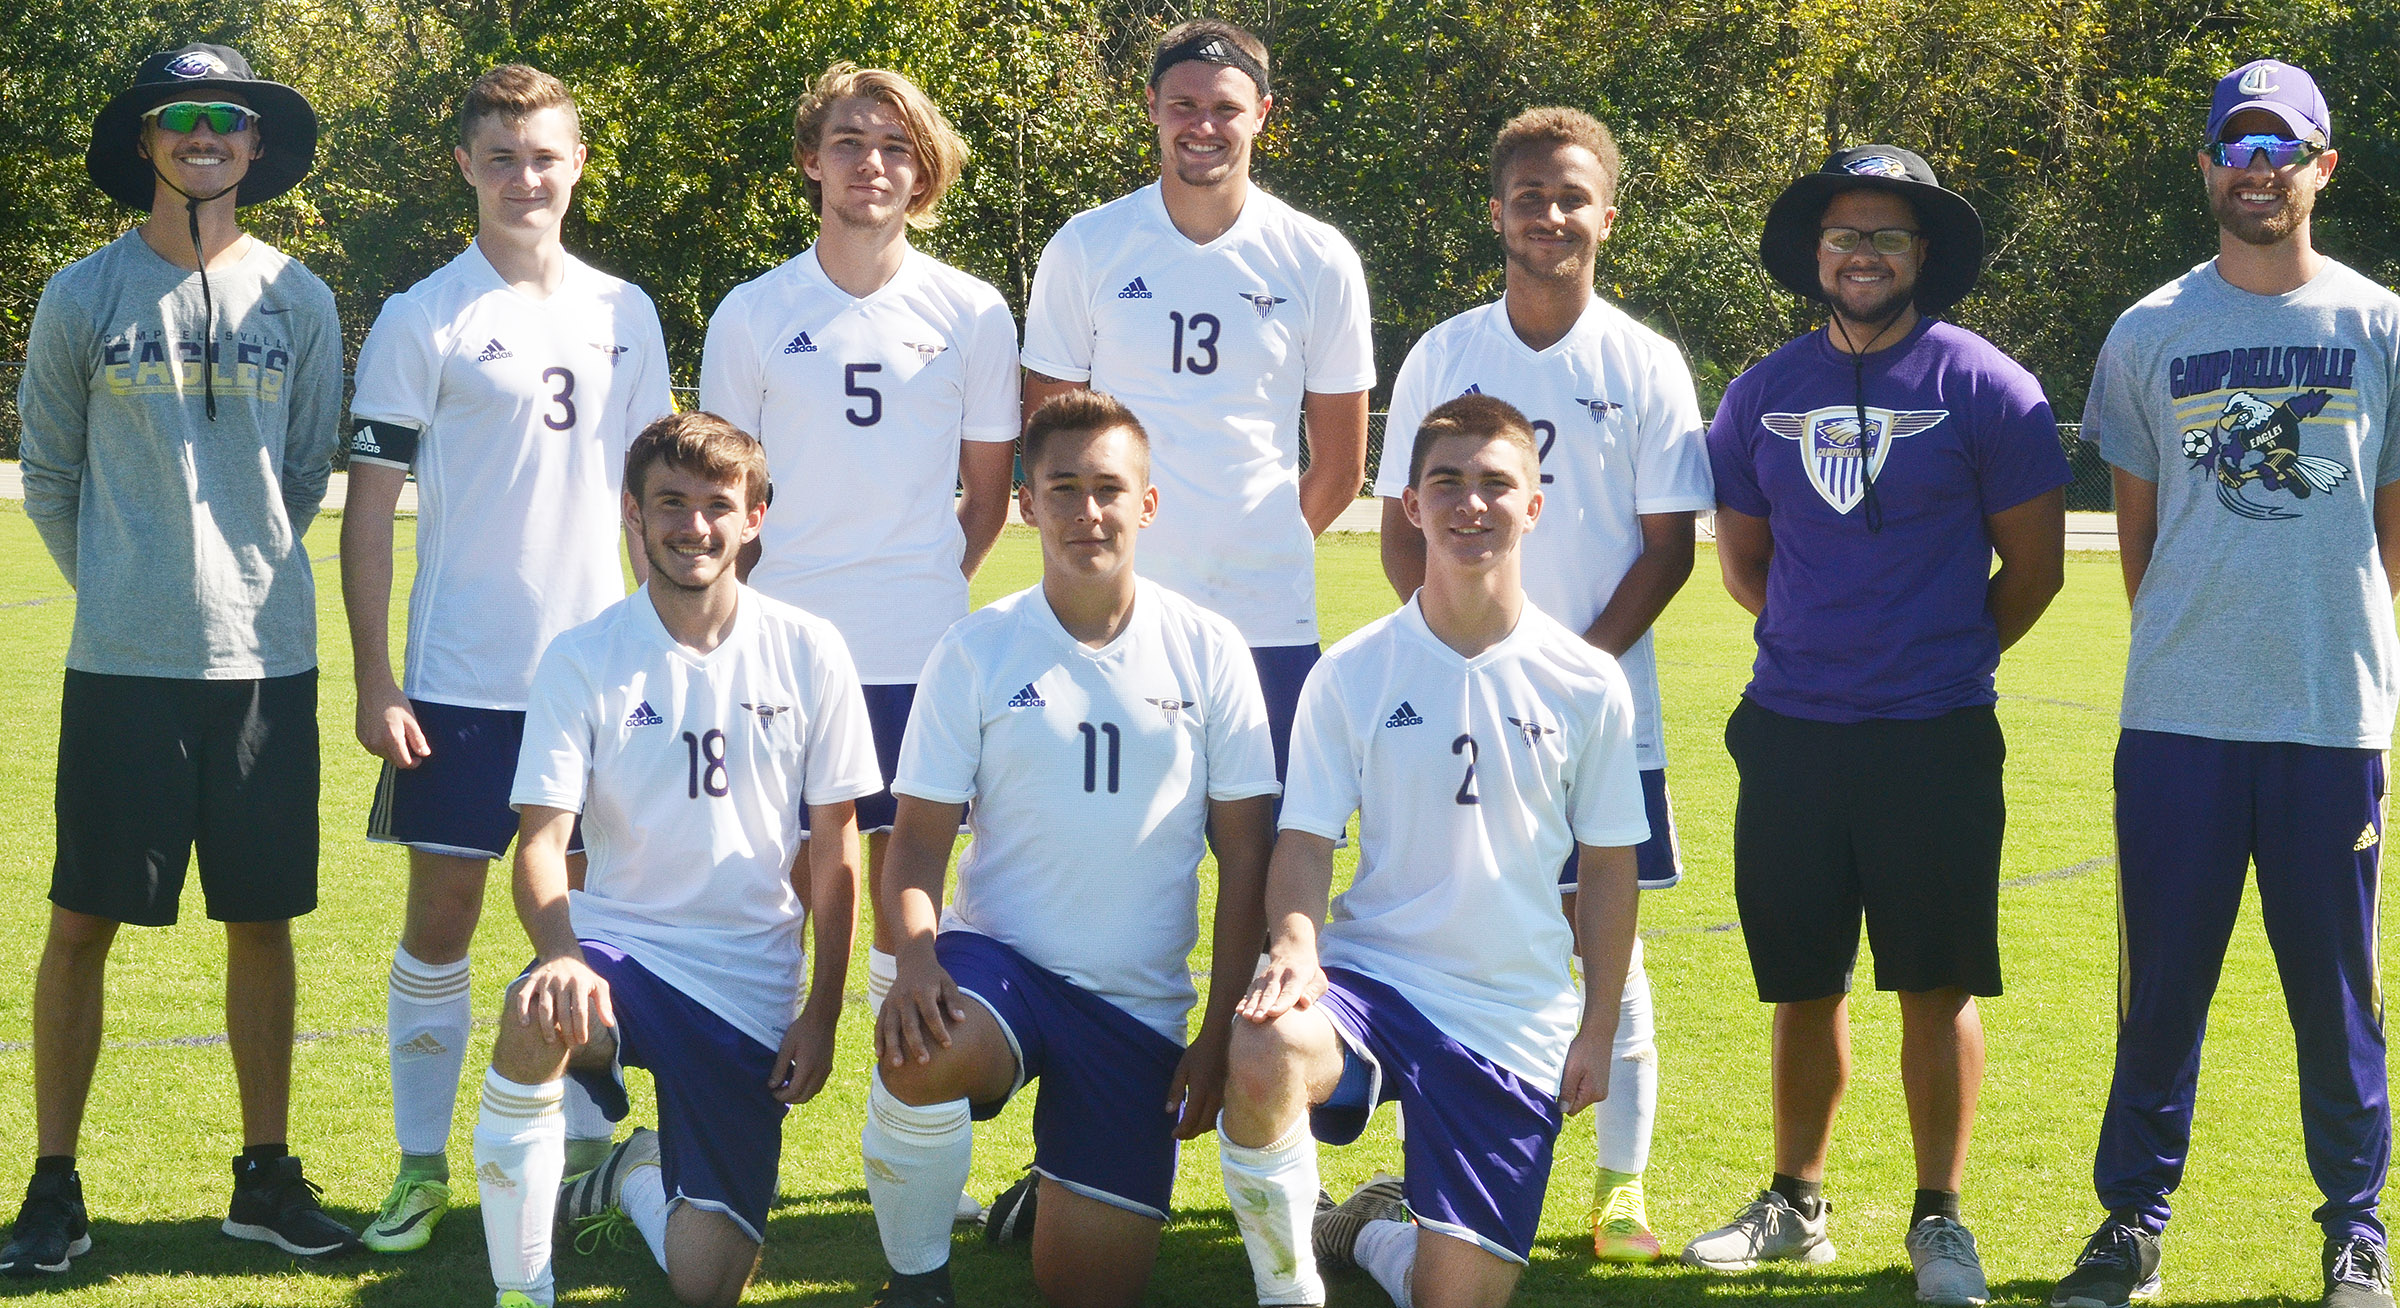 This year's CHS senior soccer players were recently honored. They are, from left, front, Jackson Hunt, Cody Davis and Cass Kidwell. Back, head coach Bradley Harris, Bryce Richardson, Christian Berry, Logan Cole, Ethan Lay and assistant coaches Malique Spaulding and Matt Schmuck.